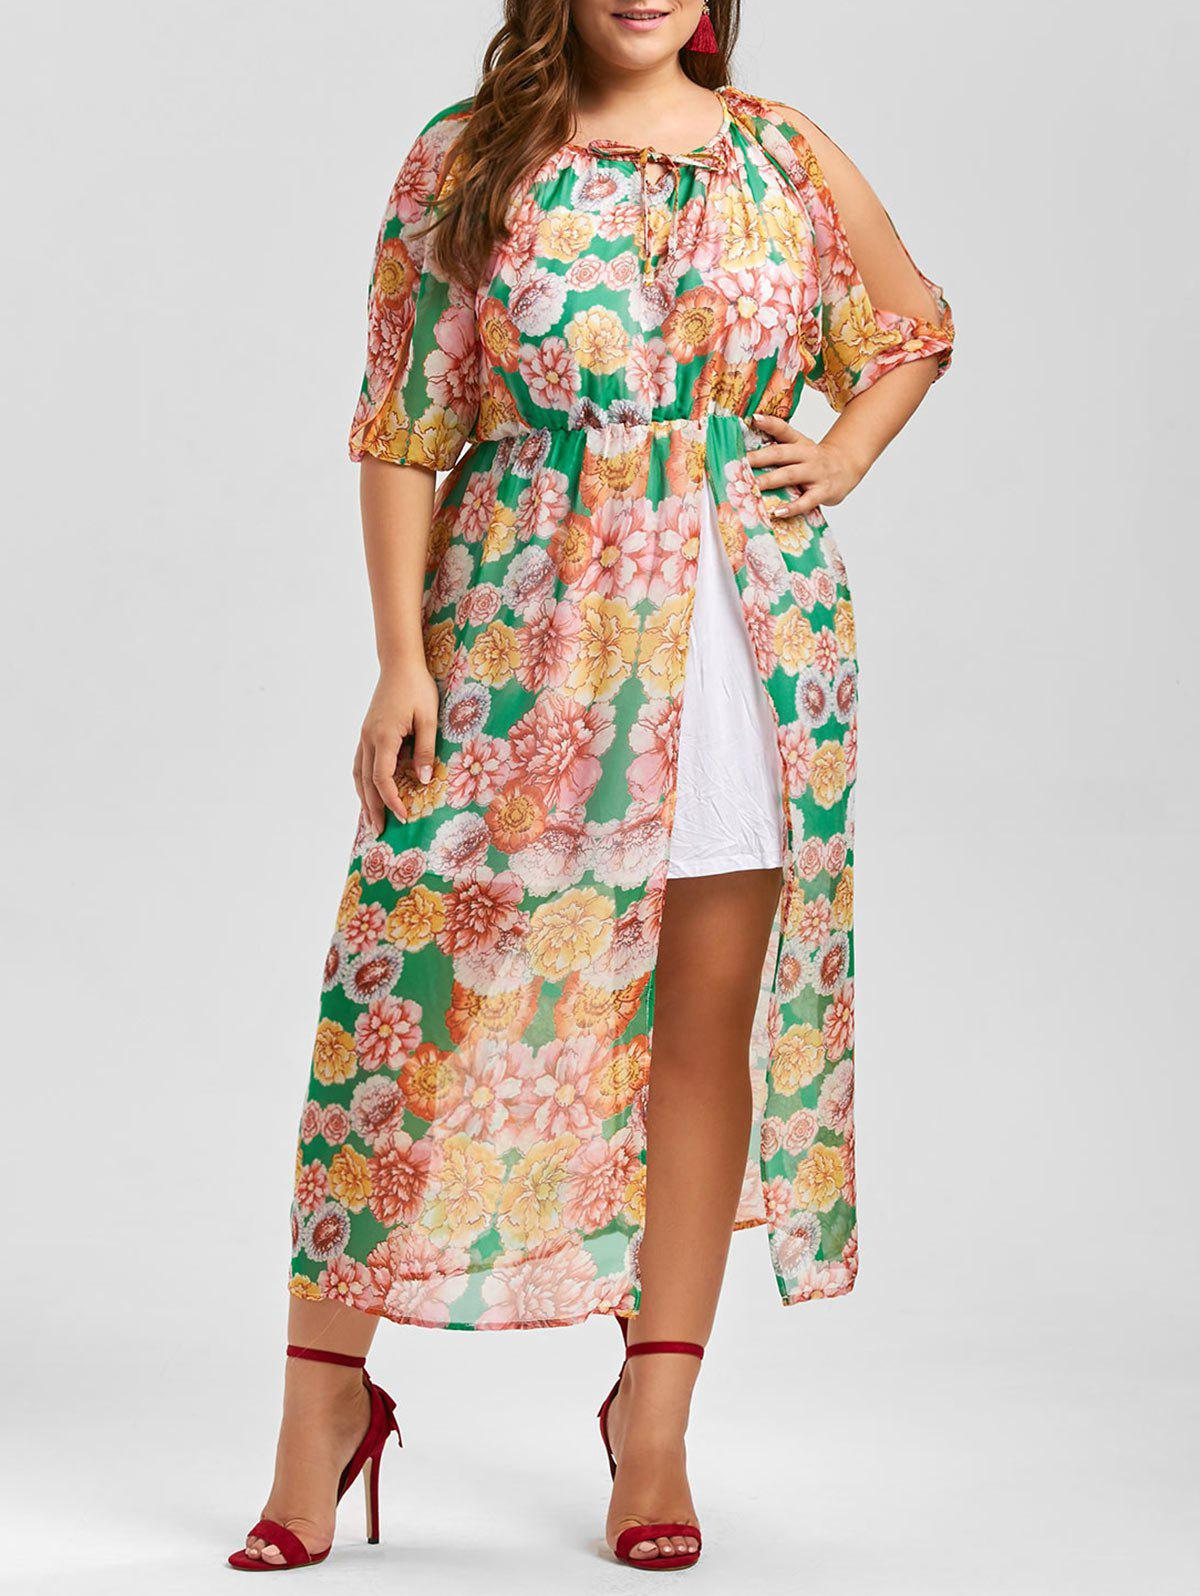 Split Sleeve Chiffon Floral A Line Plus Size Dress - multicolor 3XL